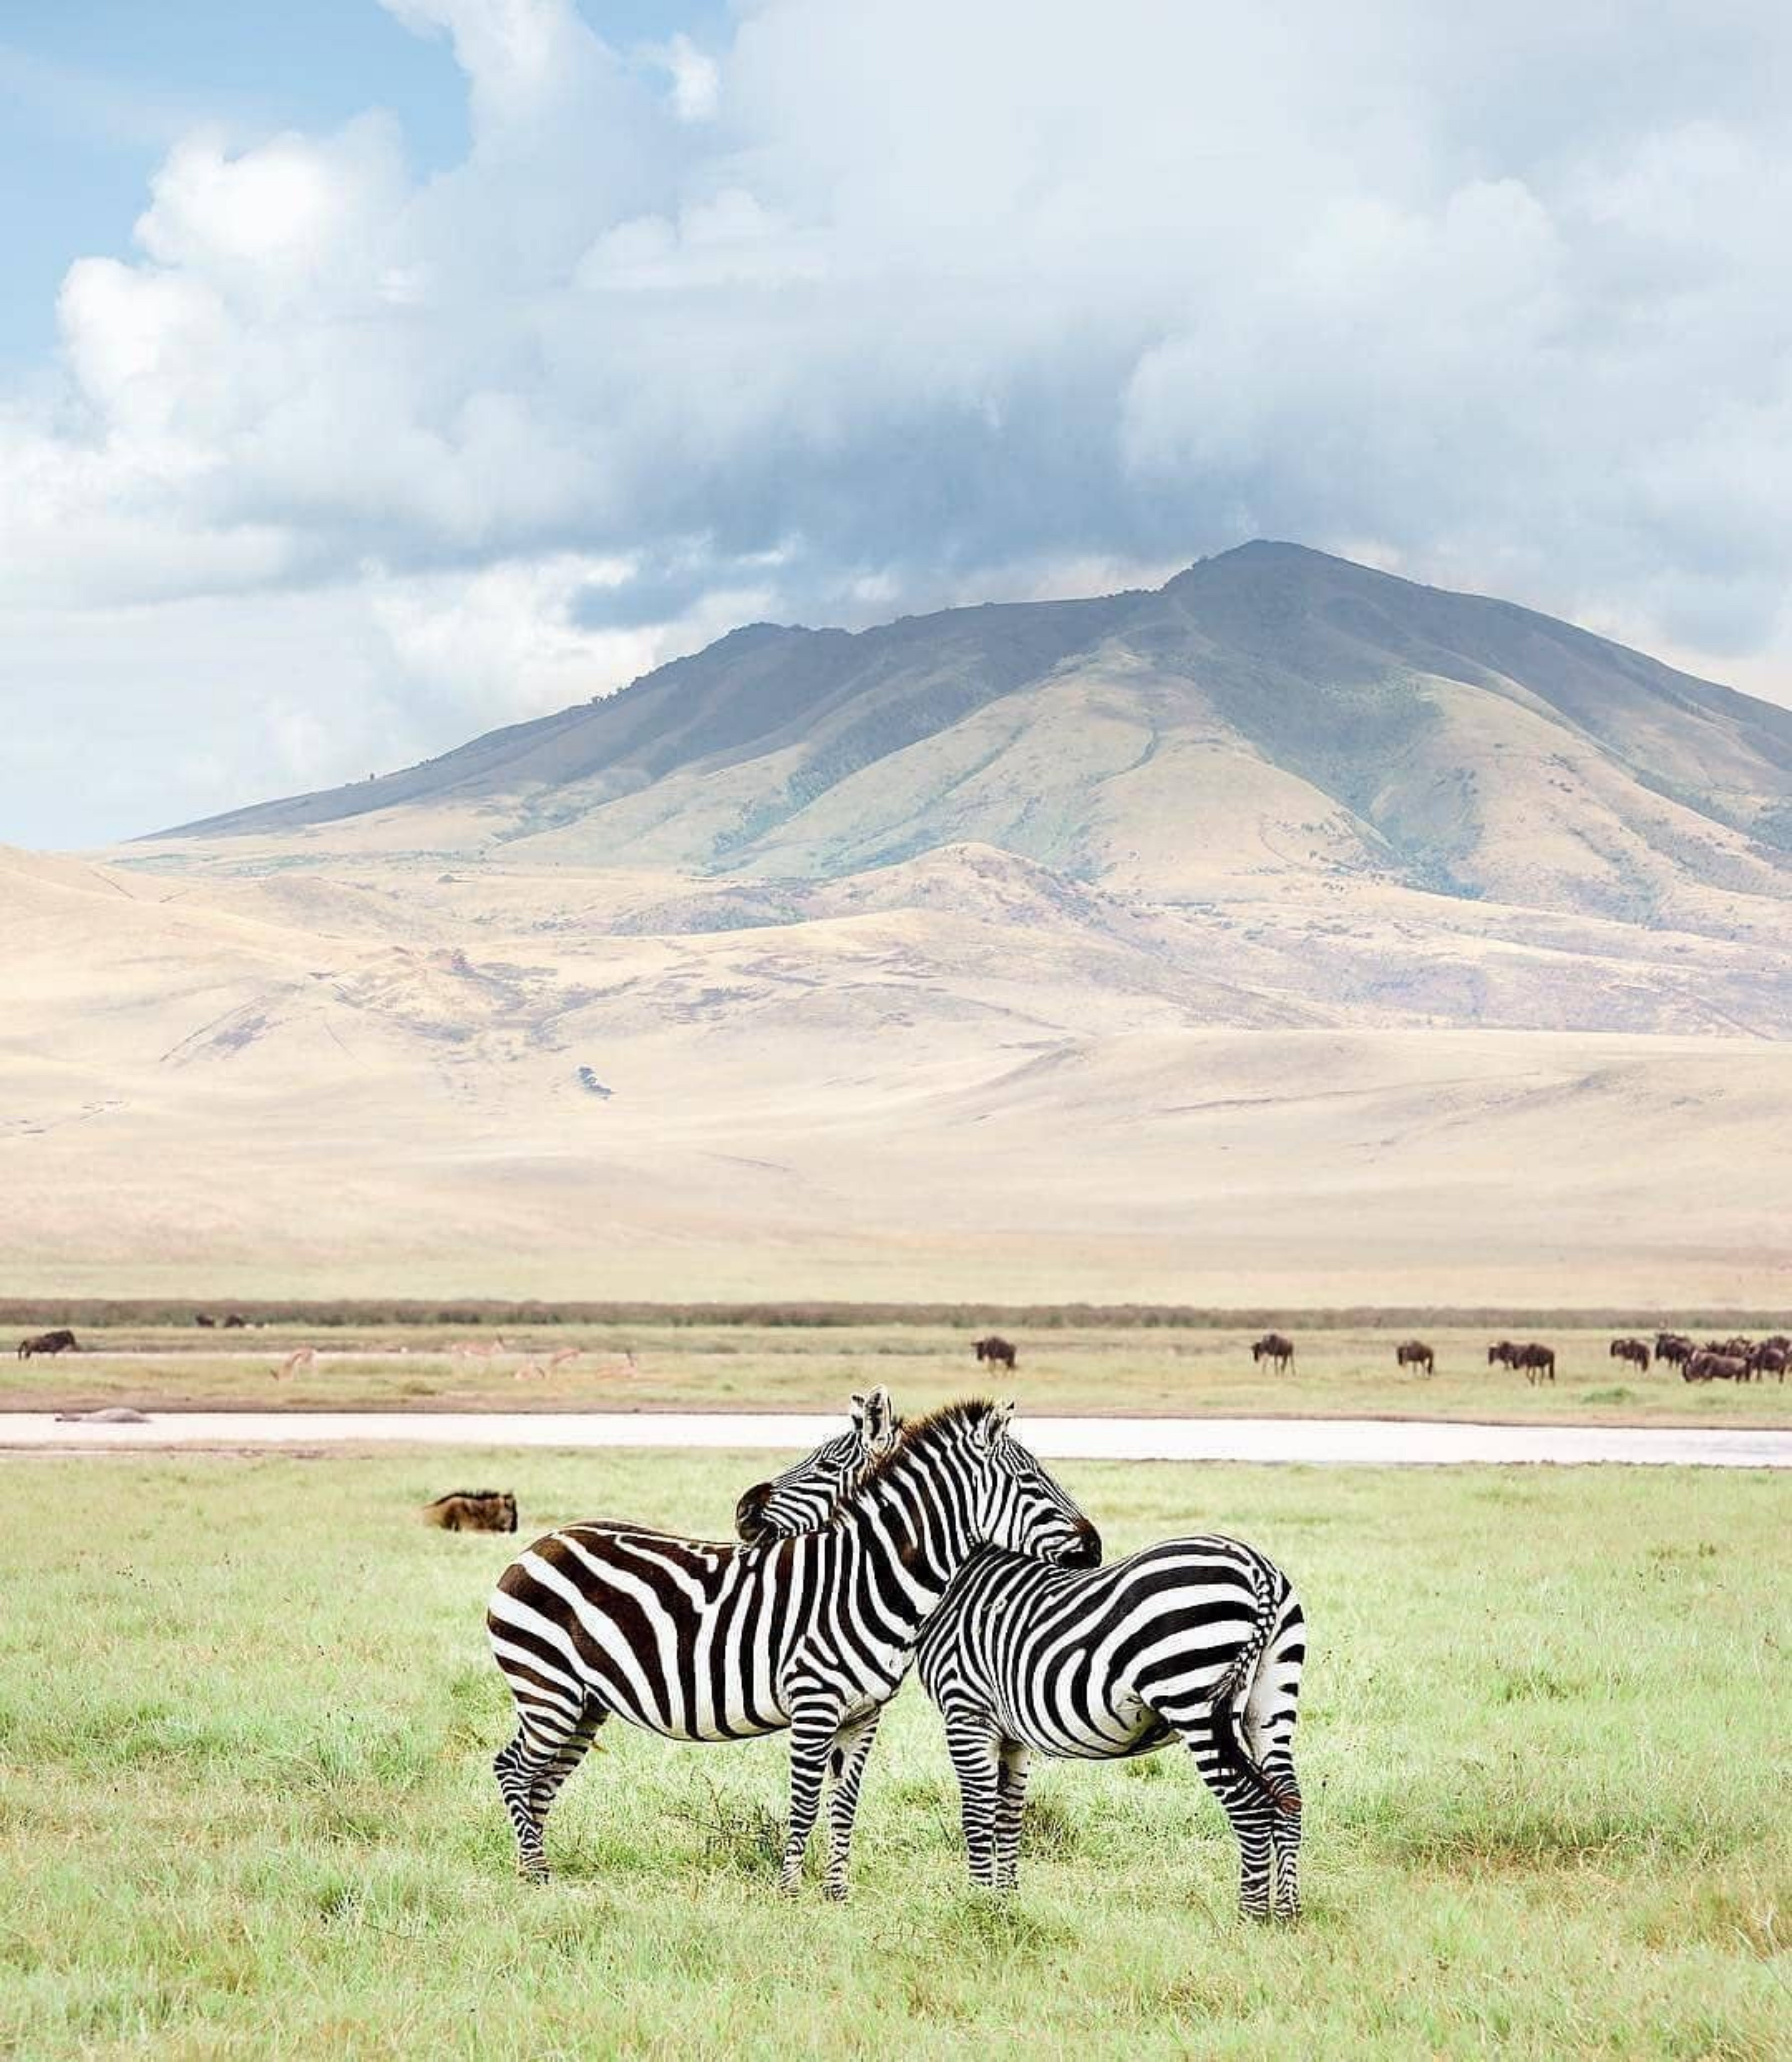 Two Zebras Standing On Grass Field With Mountain Background